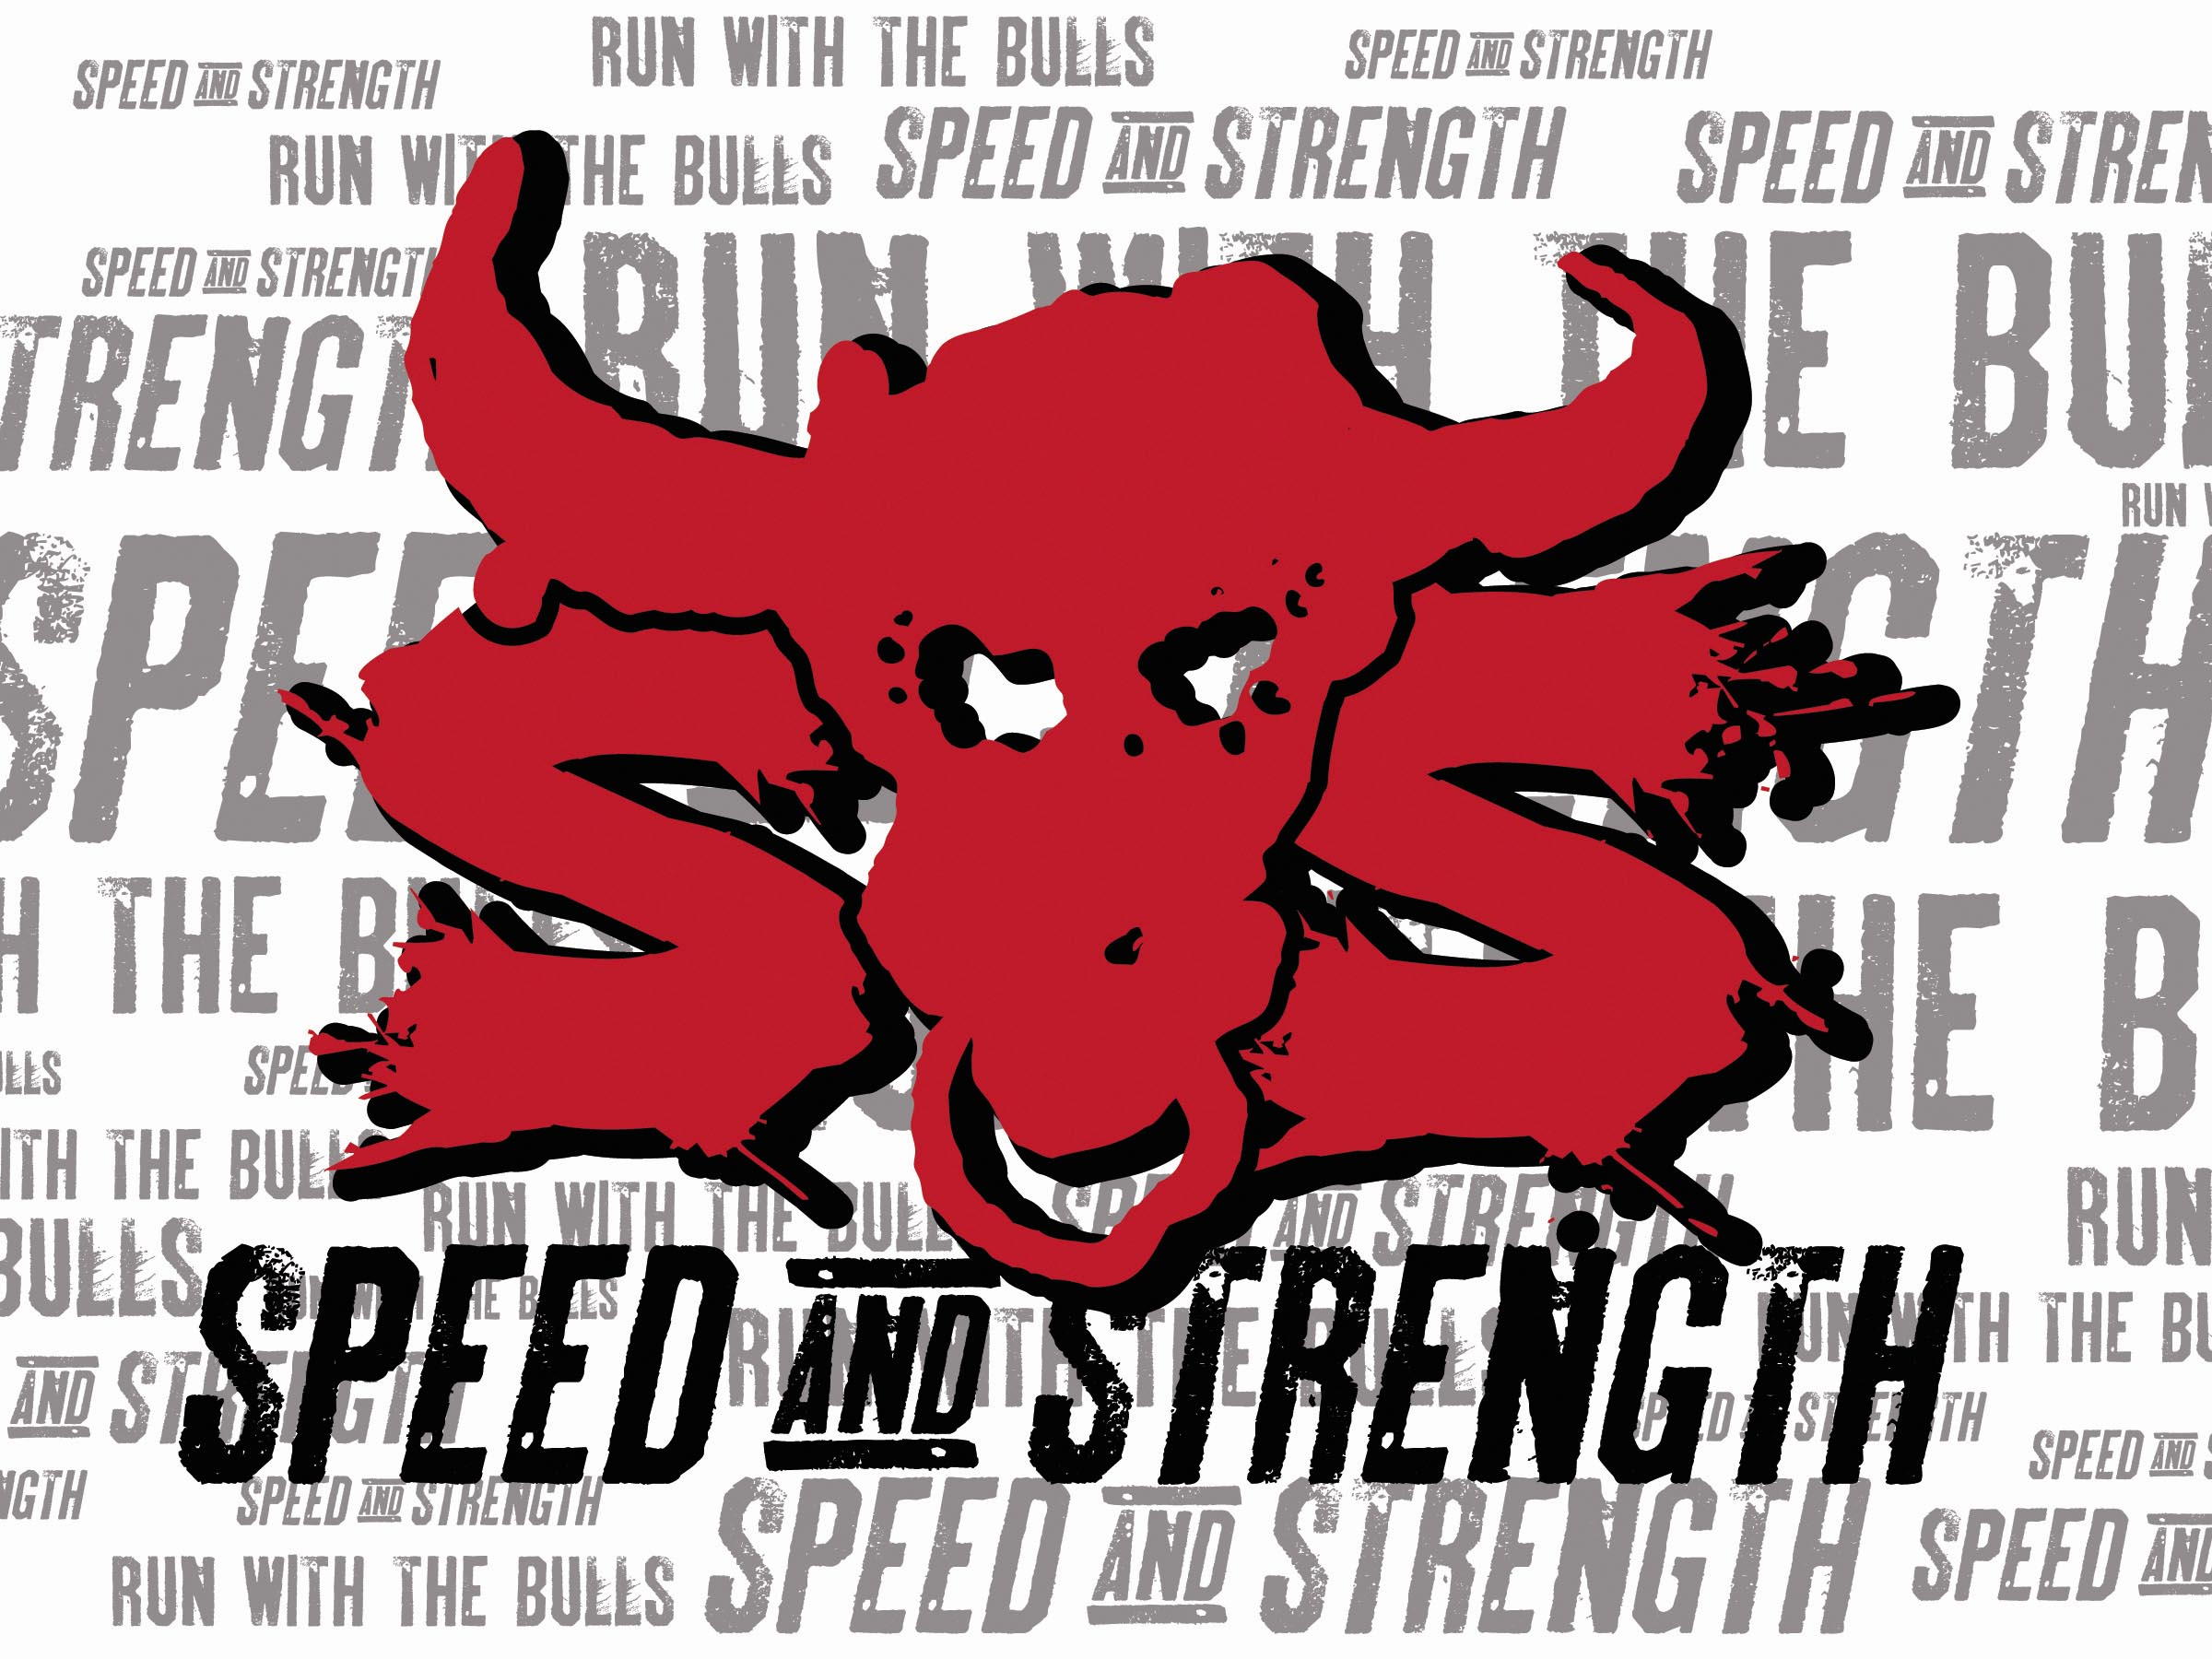 Speed and Strength Run with the Bull Banner